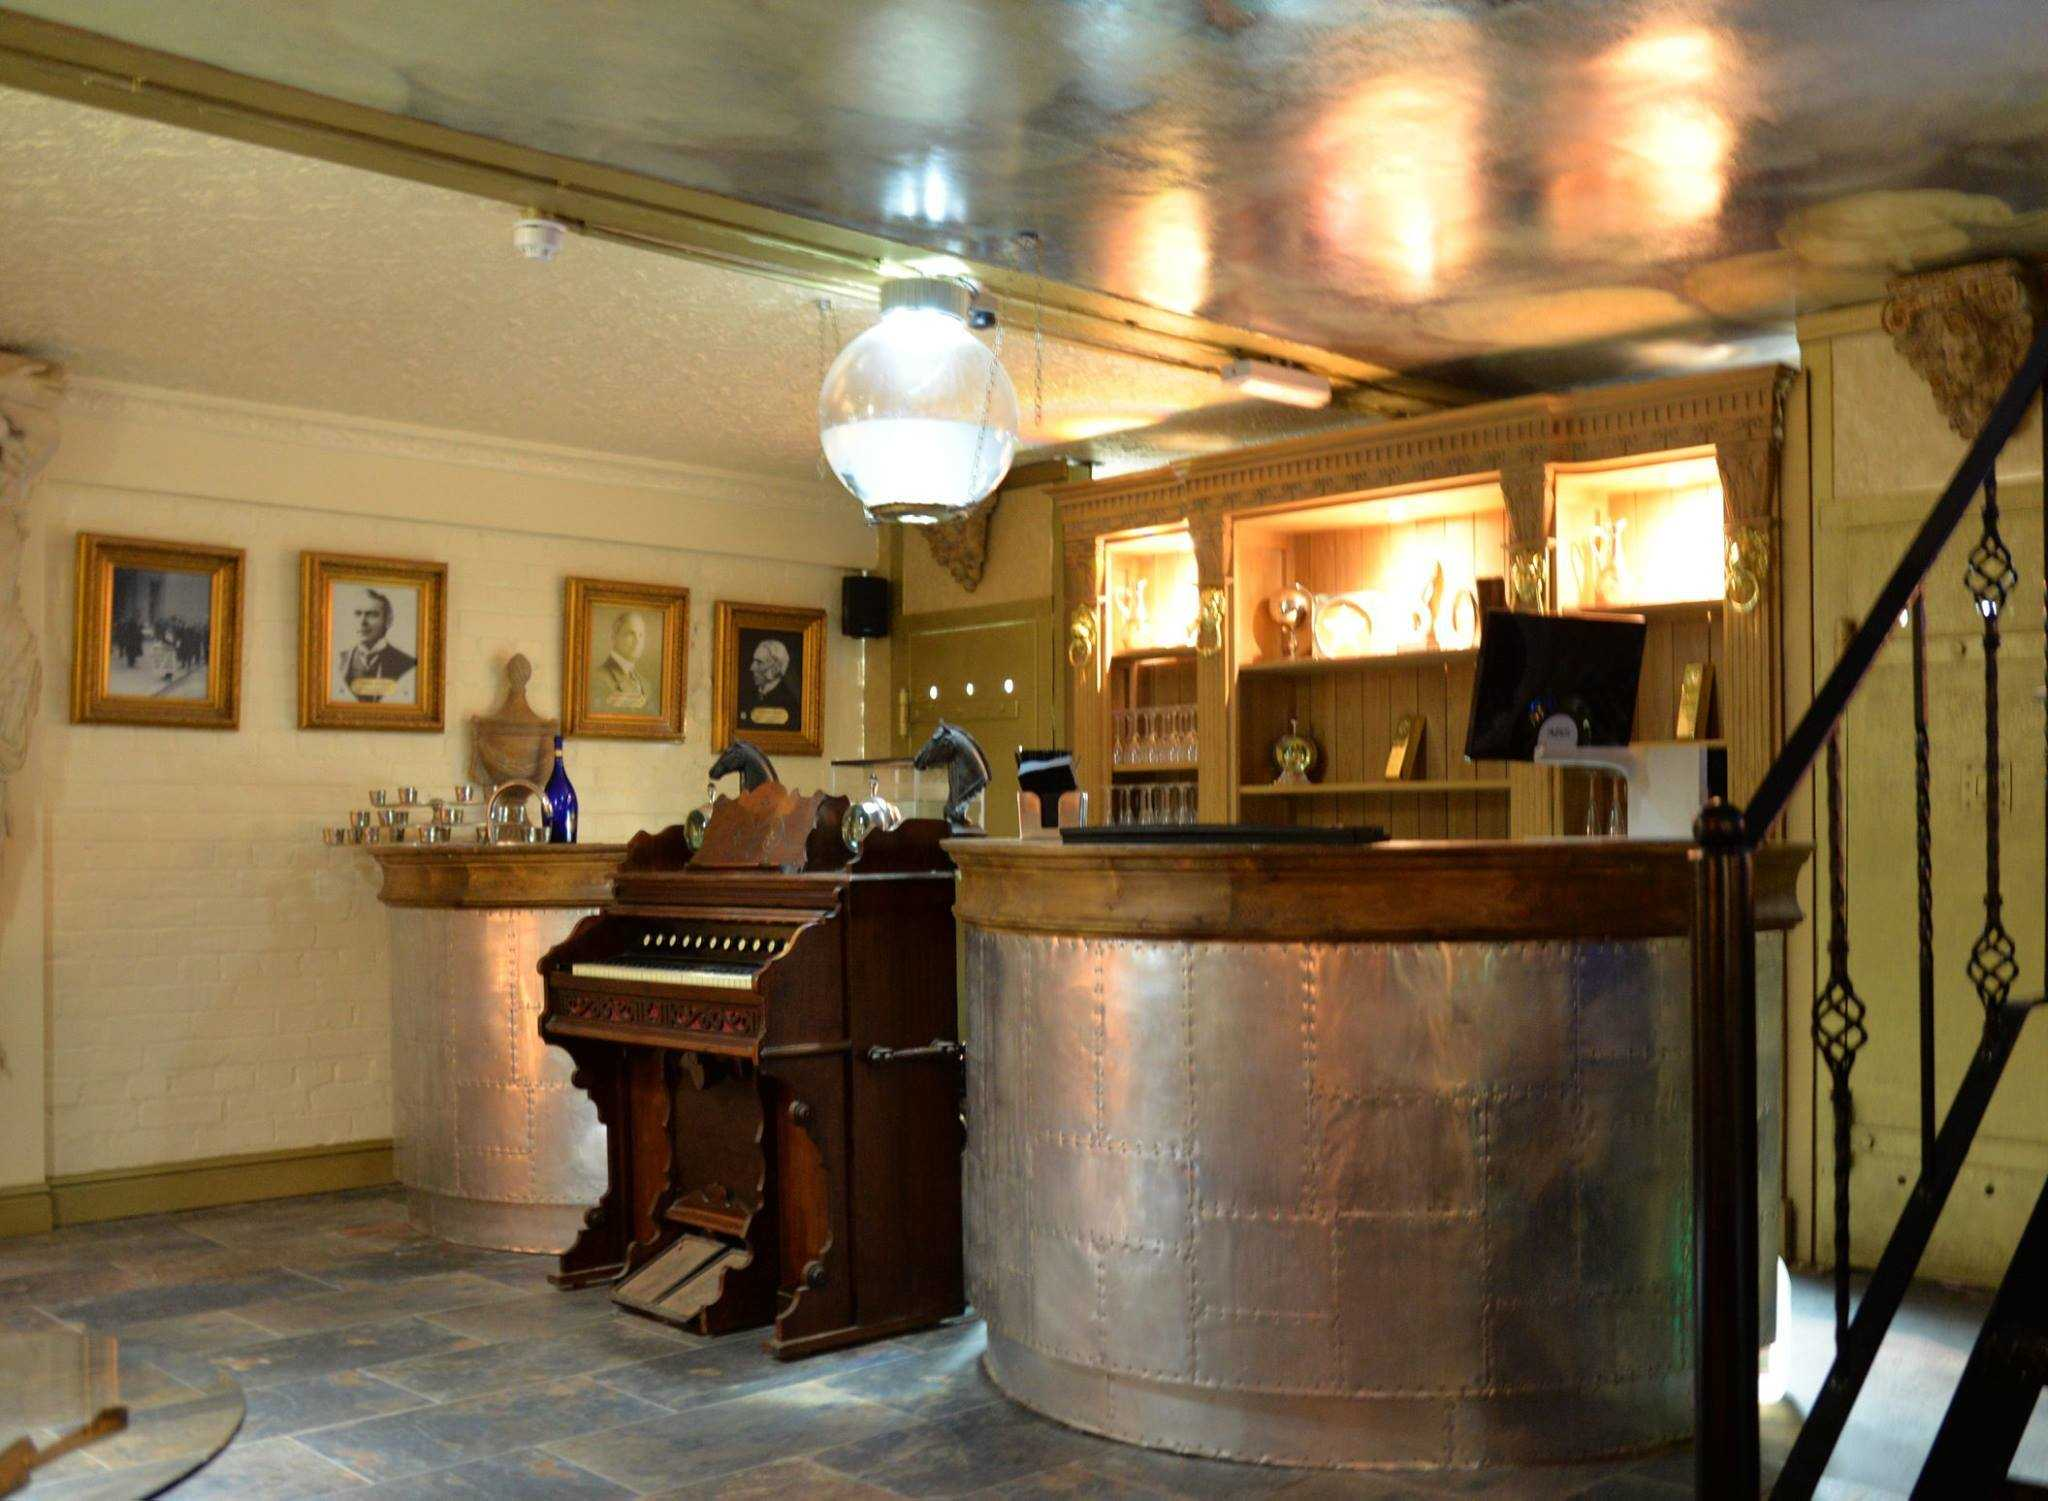 Morgans Vault Bar, complete with a 200 year old organ